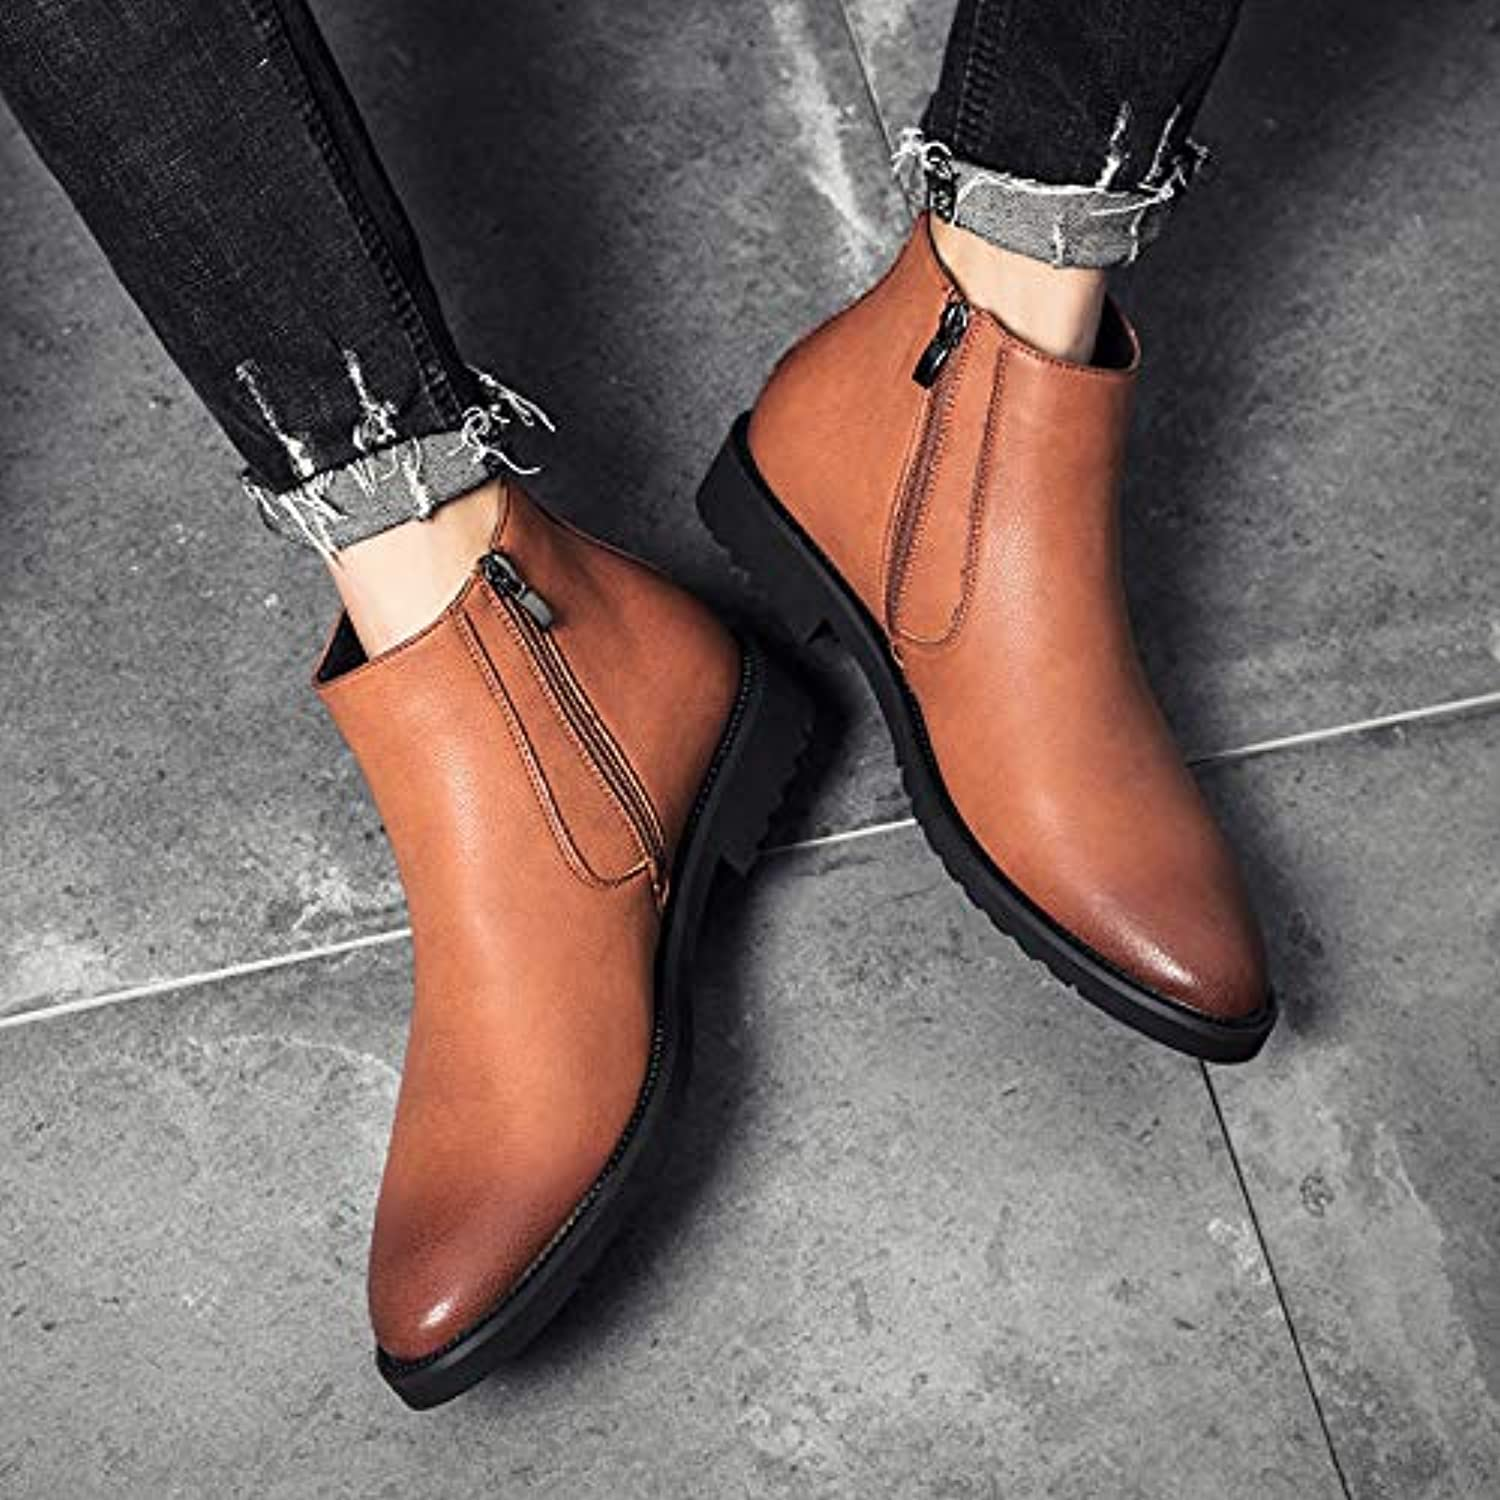 LOVDRAM Boots Men's Martin Boots Men'S Winter Cotton To Help Pu Inside The High shoes To Help The Tip Chelsea Boots Short Boots